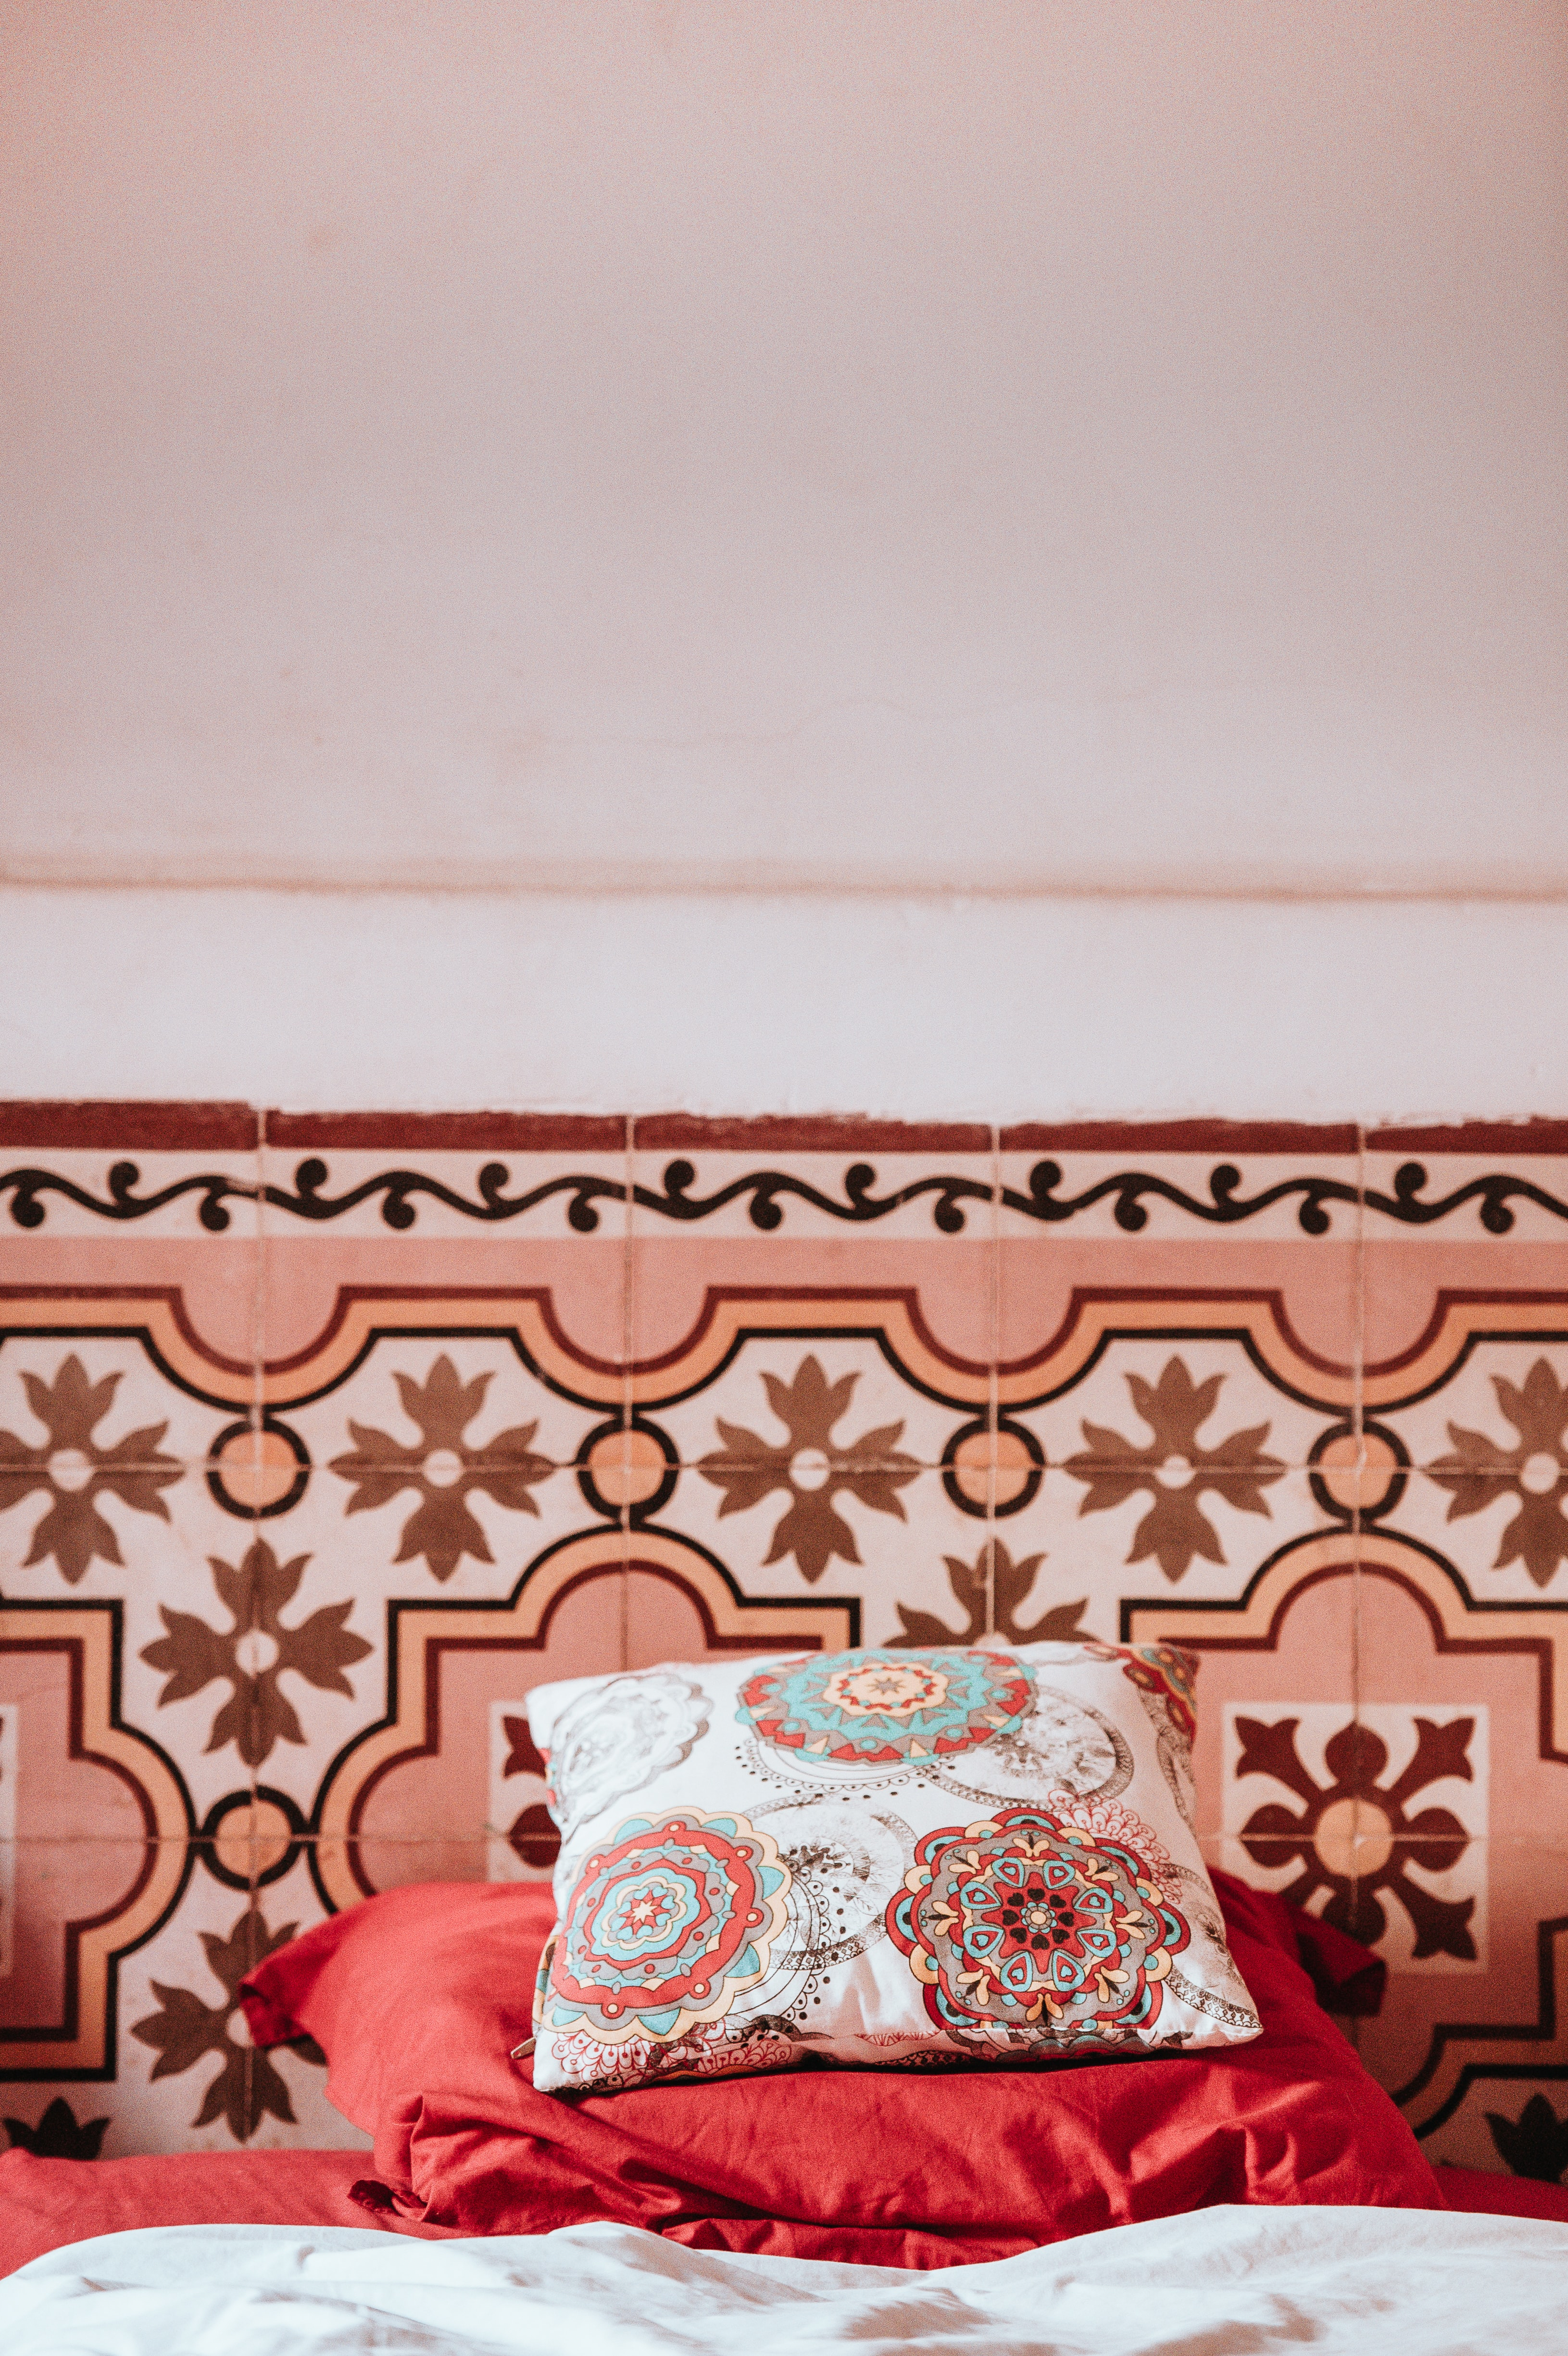 multicolored damask pillow on pink textile